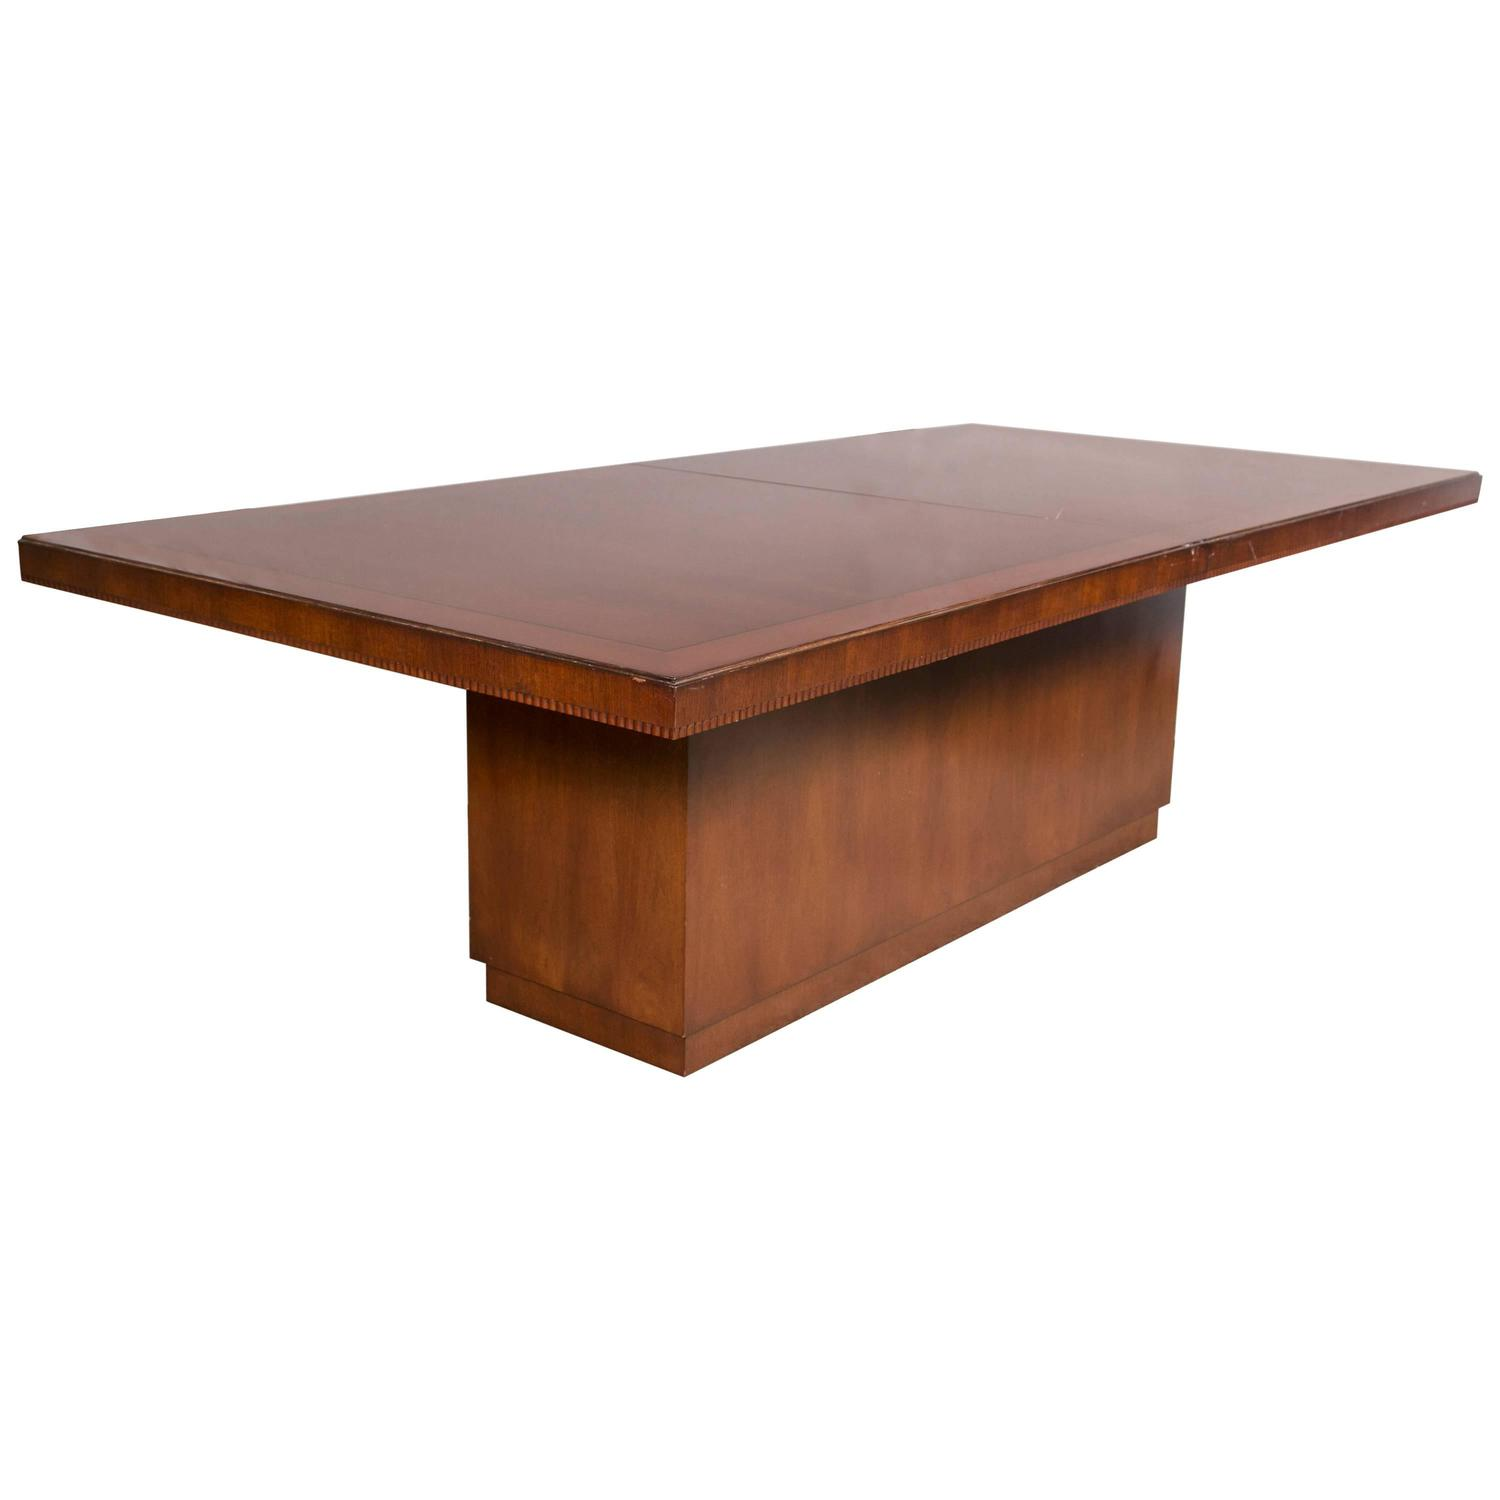 Superbe Ralph Lauren Palaical Modern Hollywood Dining Table At 1stdibs